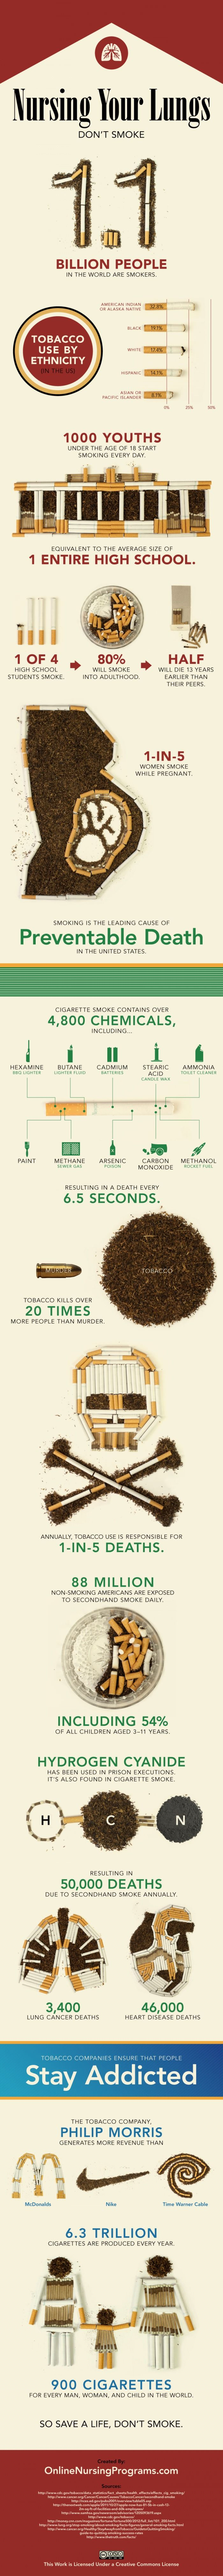 Don't Smoke (infographic)